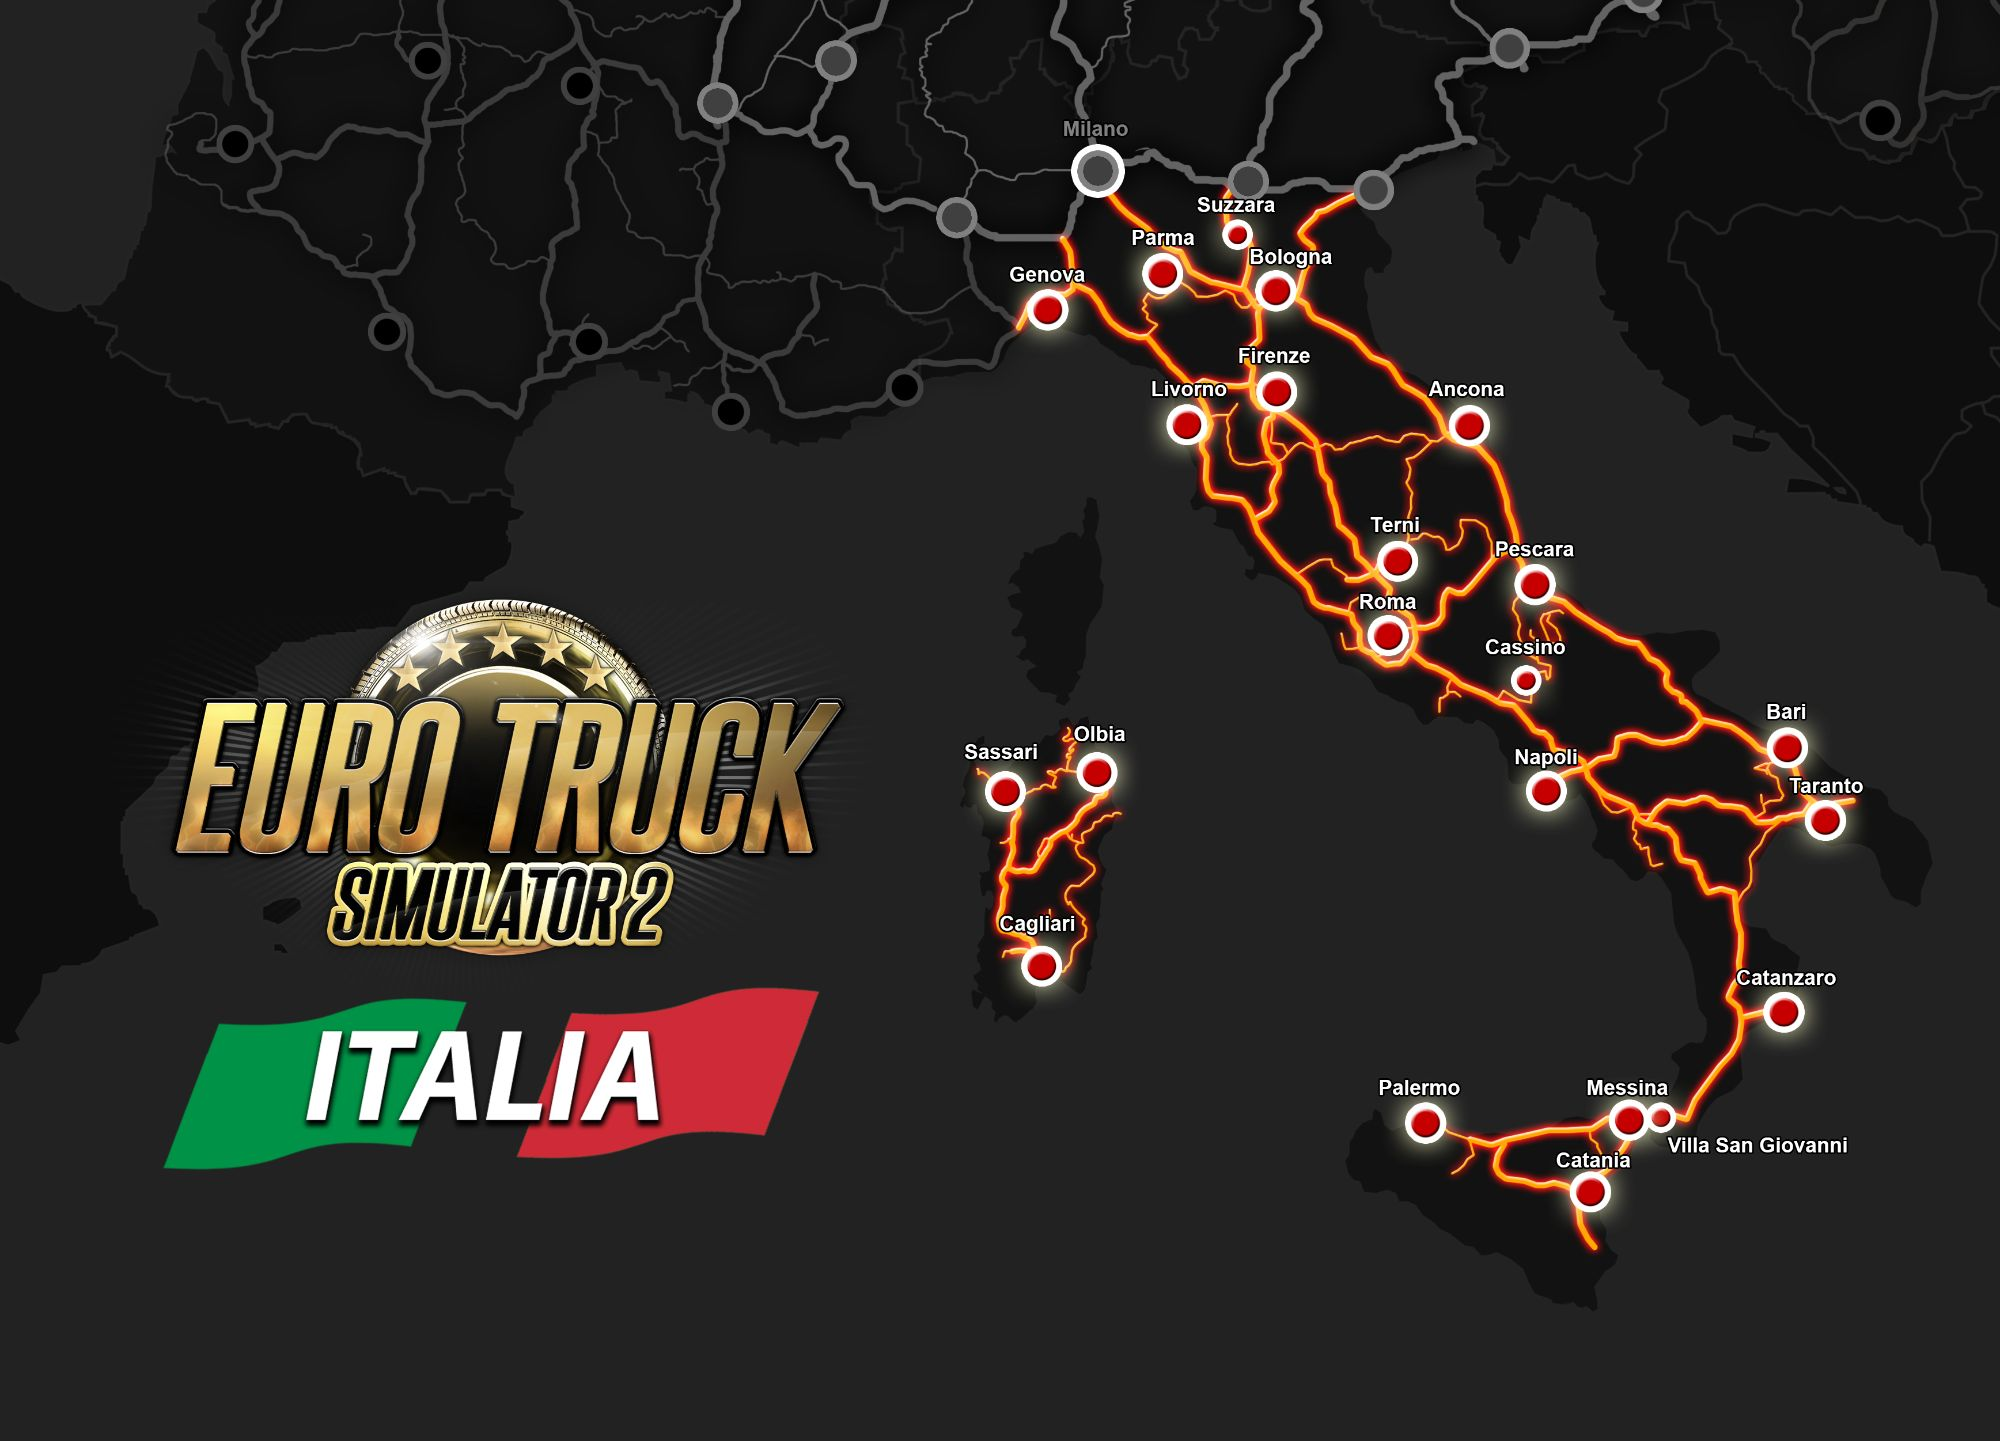 Image showing the map for Euro Truck Simulator 2 Italia